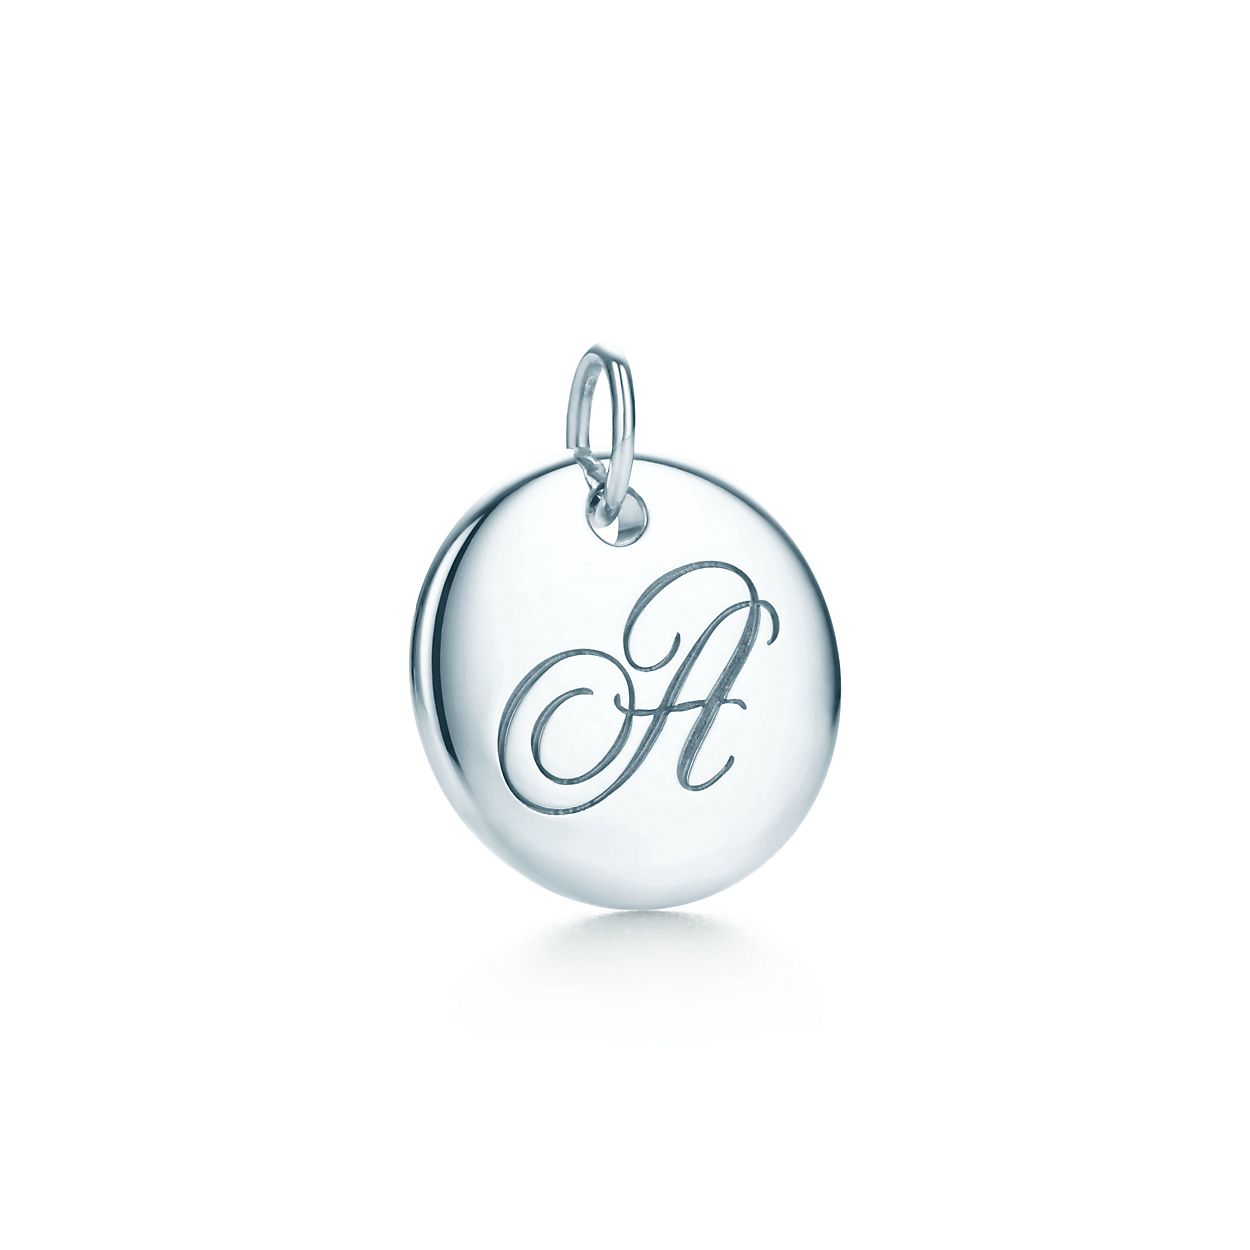 Tiffany Notes alphabet disc charm in silver, small Letters A-Z available - Size D Tiffany & Co.